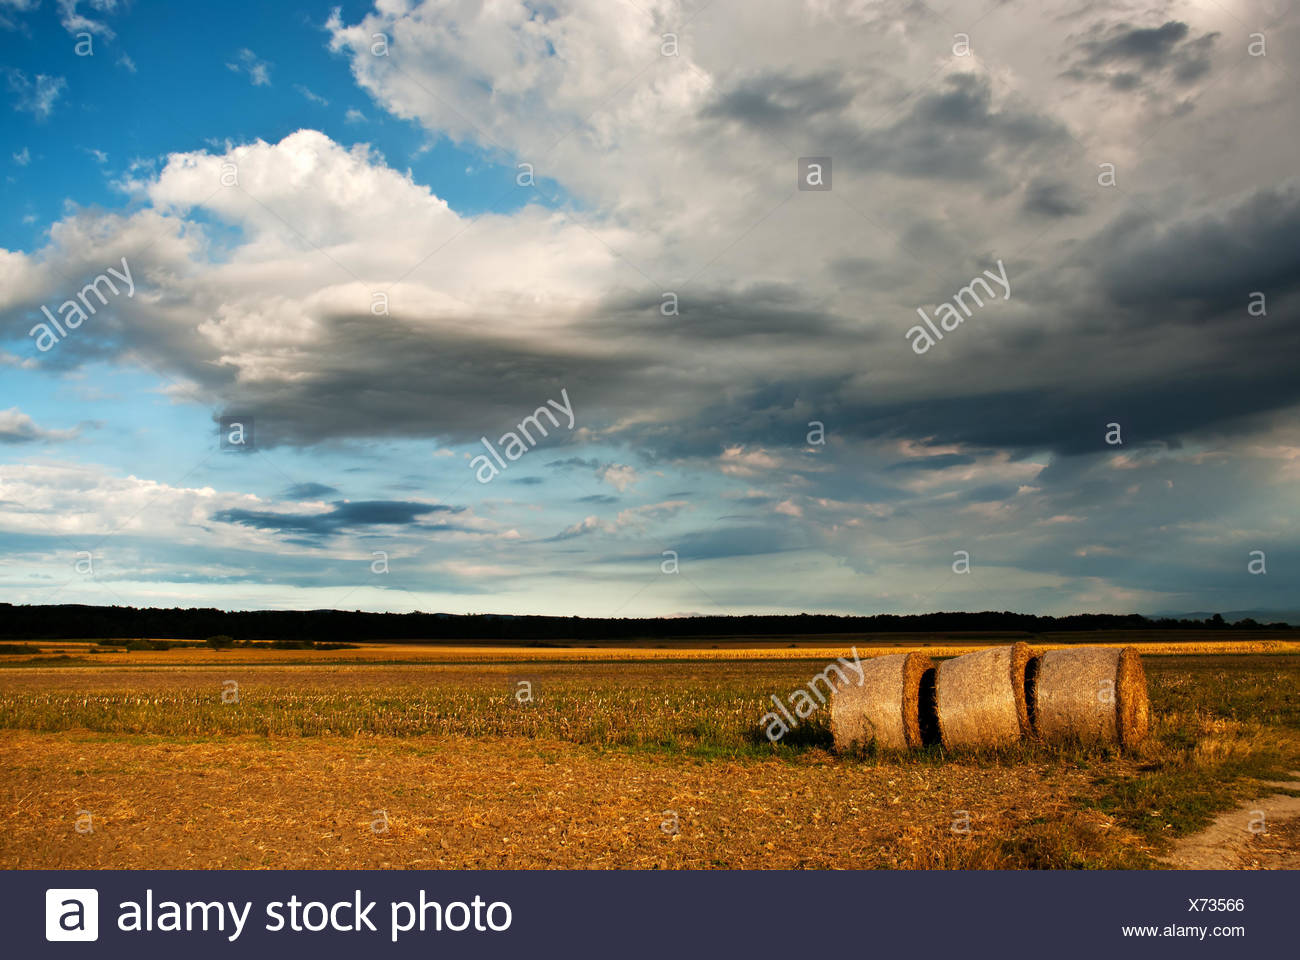 field, acre, cultivation, scenery, countryside, nature, harvest, profit, gain, Stock Photo